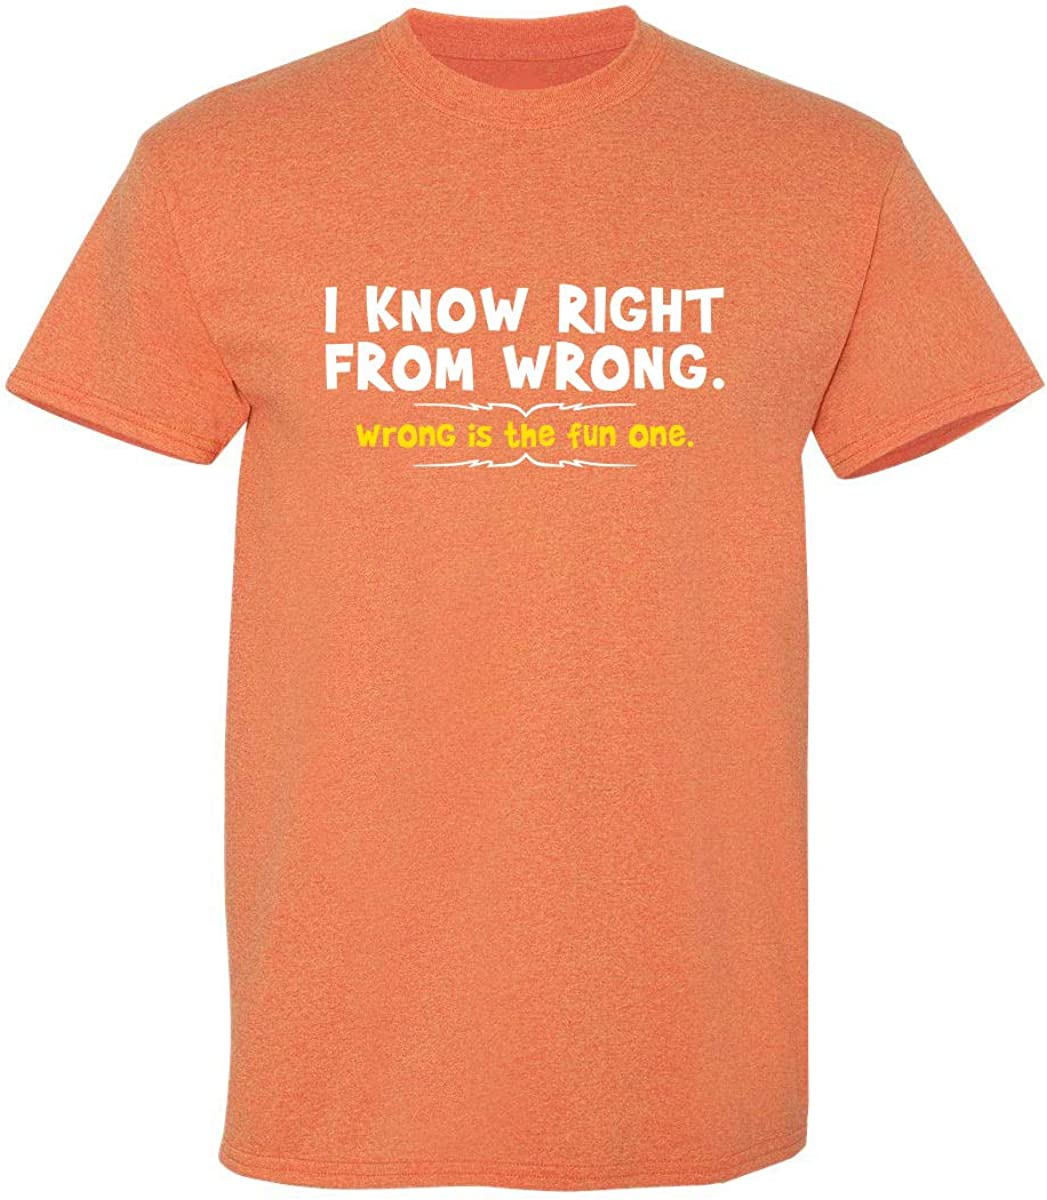 Right from Wrong Graphic Novelty Sarcastic Funny T Shirt